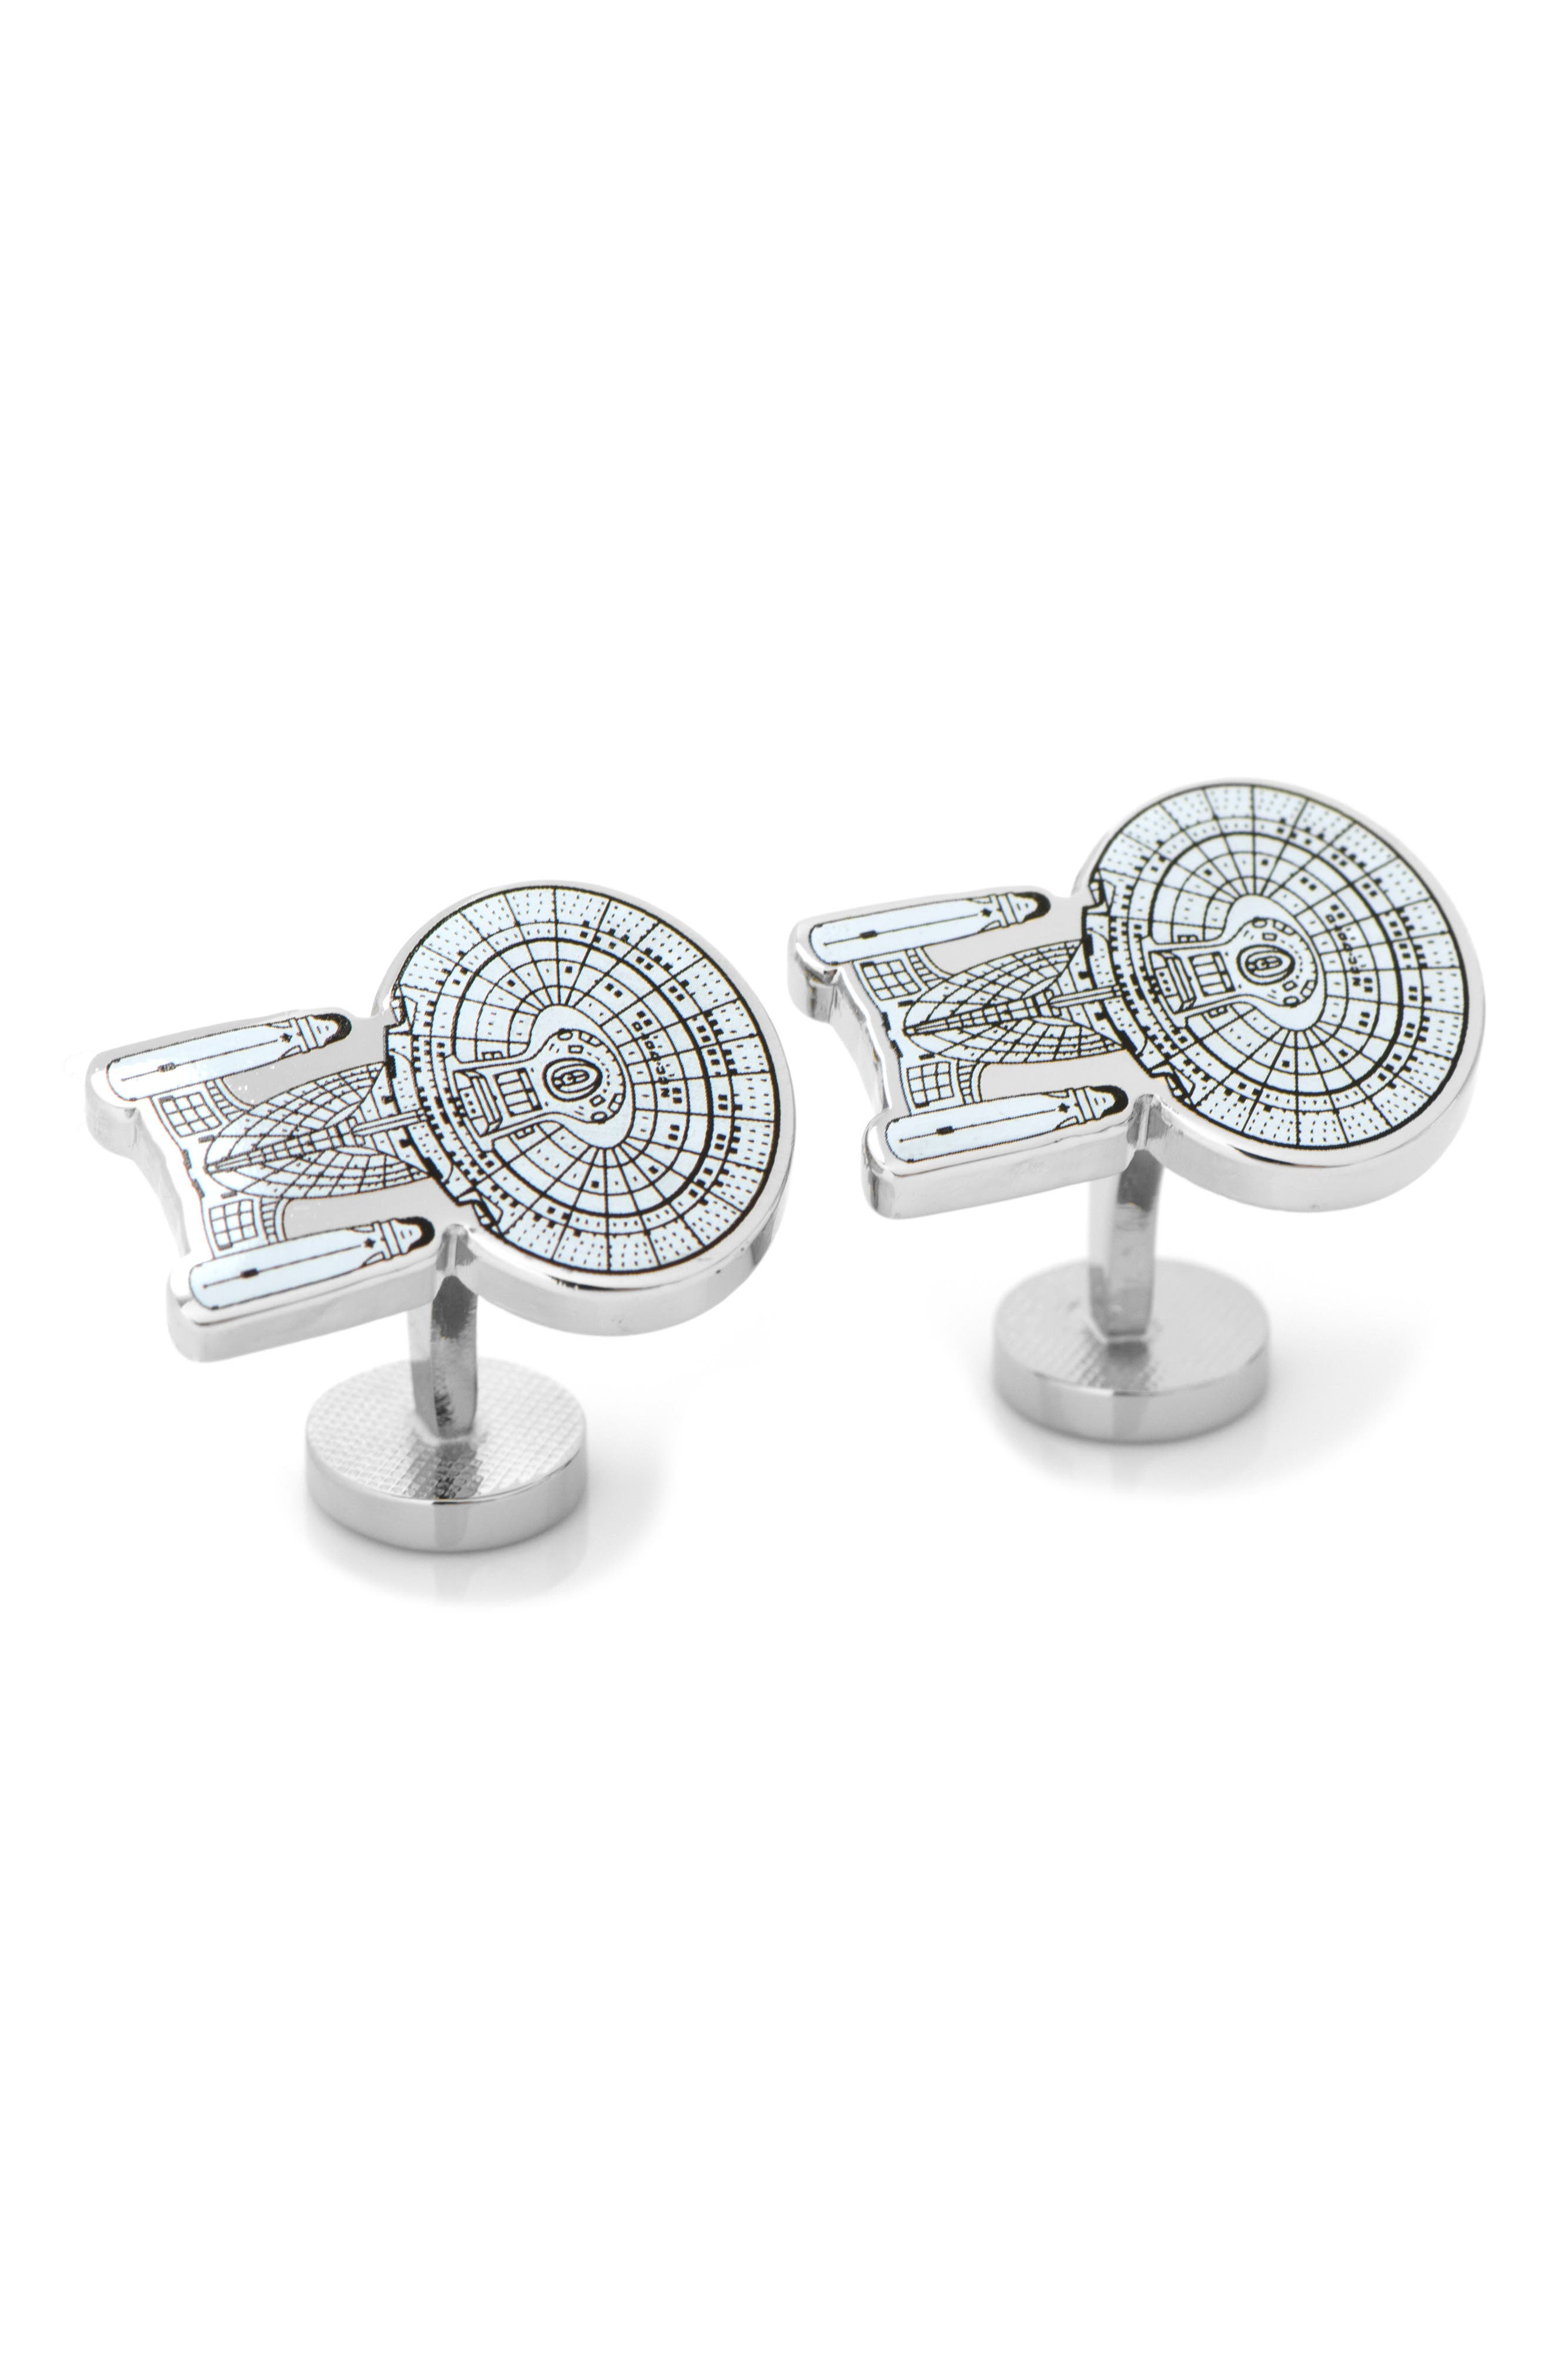 Cufflinks Inc Mens Star Trek Enterprise Cufflink